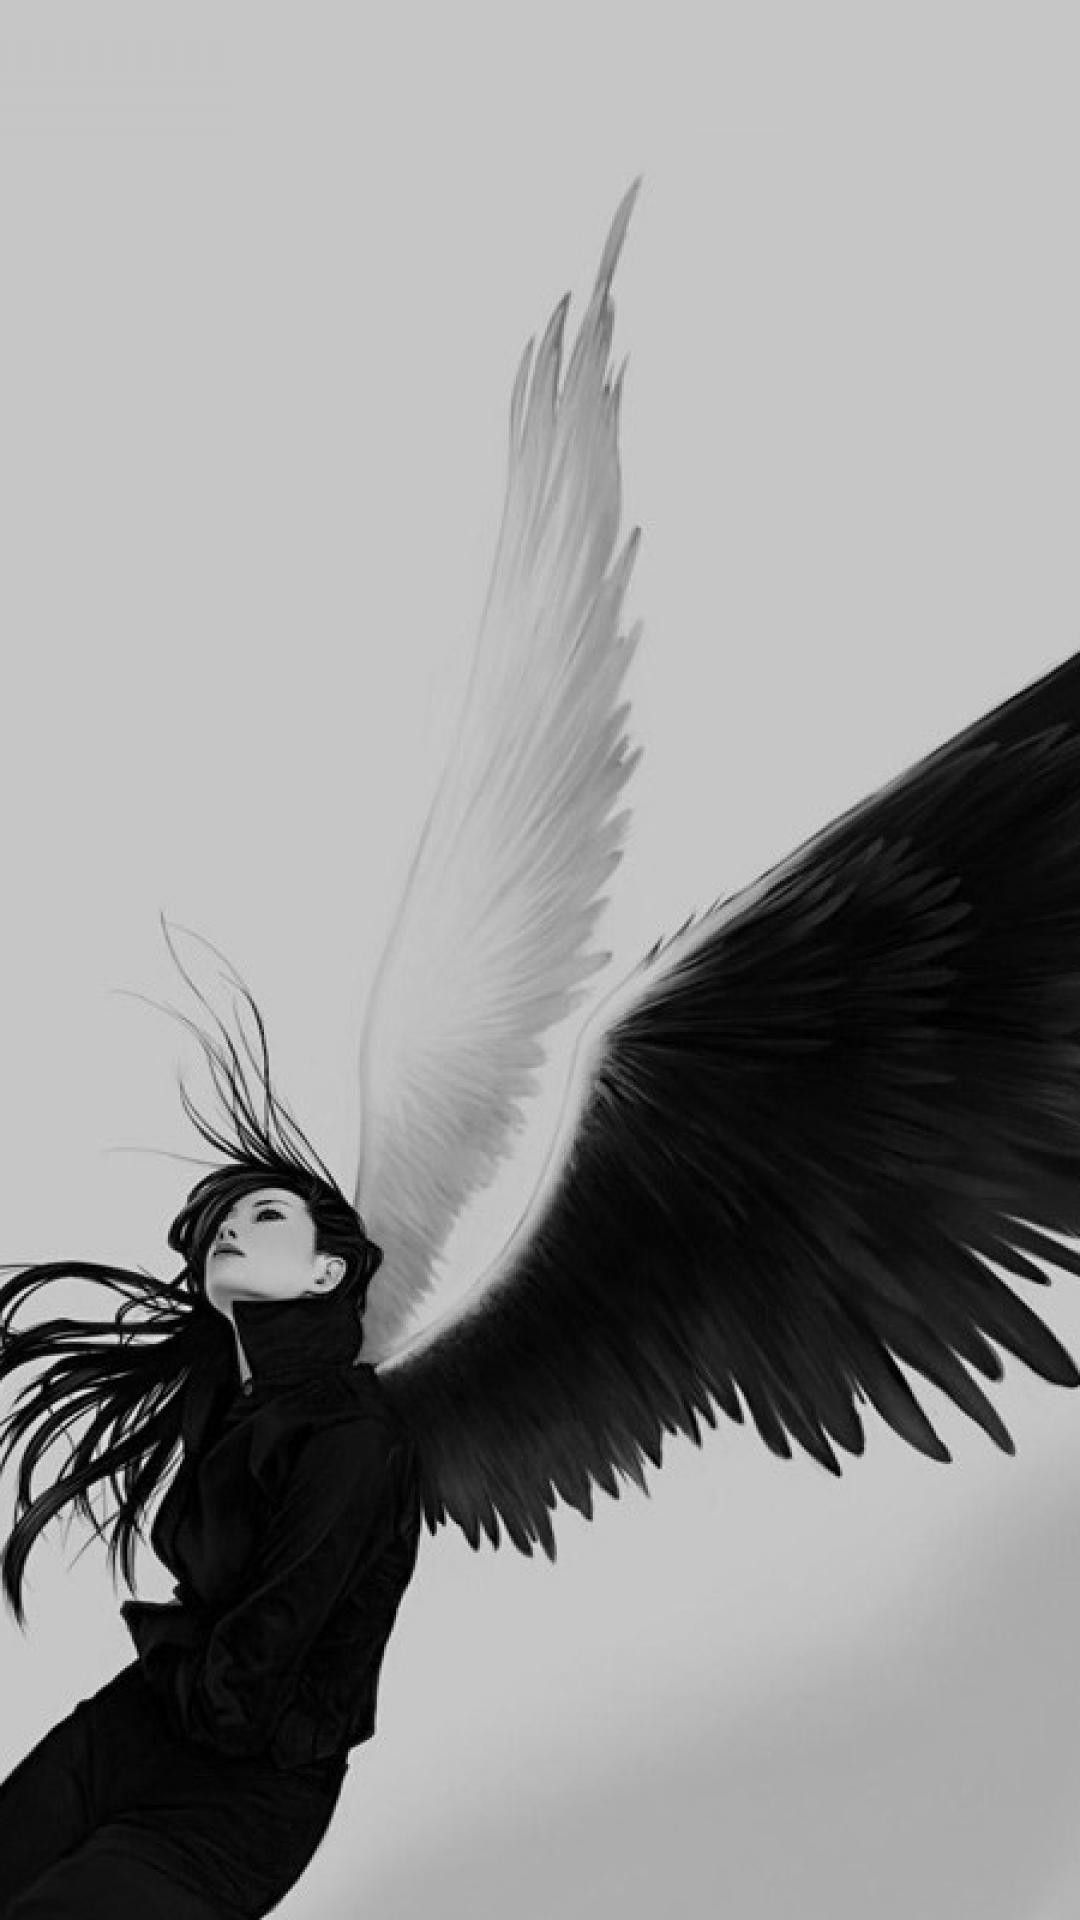 Black angel wings dark wings white angel fallen angels dark angels